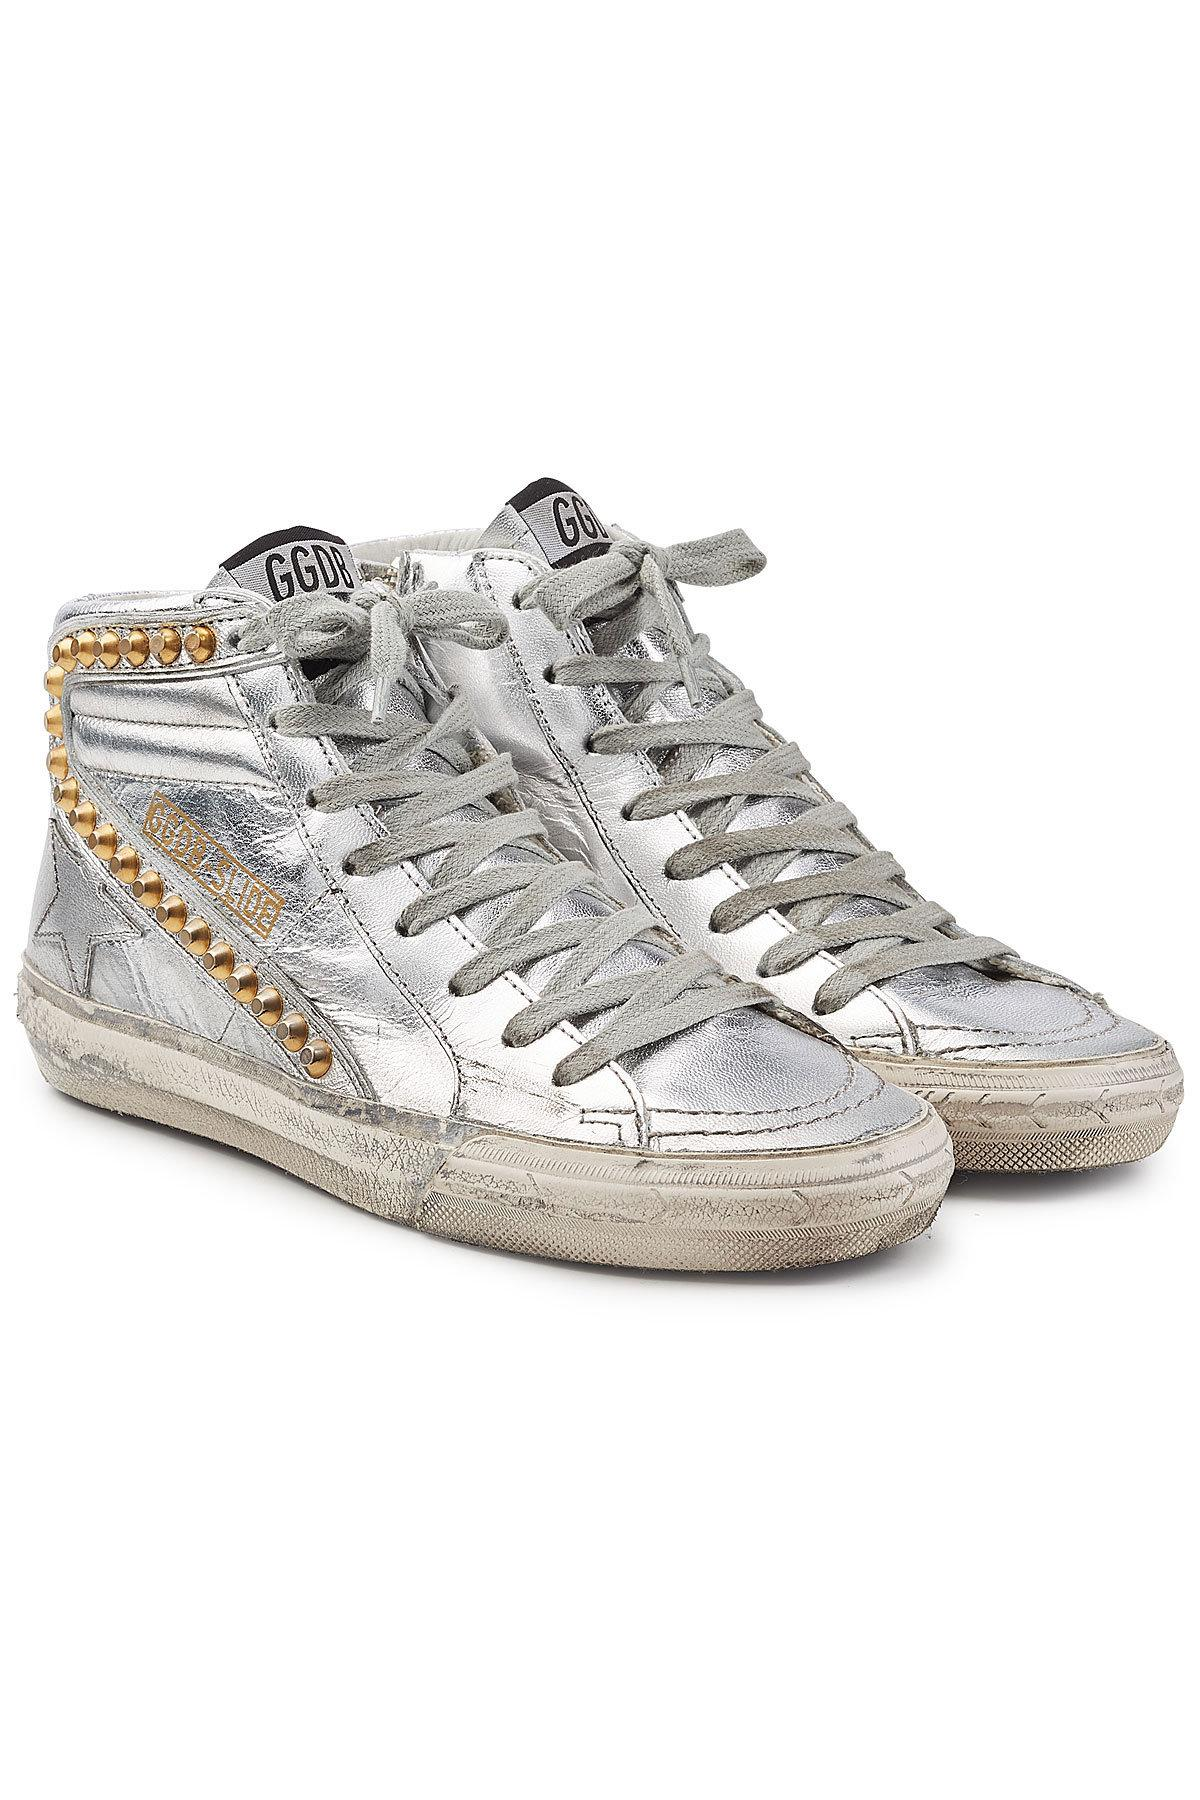 save off discount shop exquisite style Slide Metallic Leather Sneakers With Studs In Silver